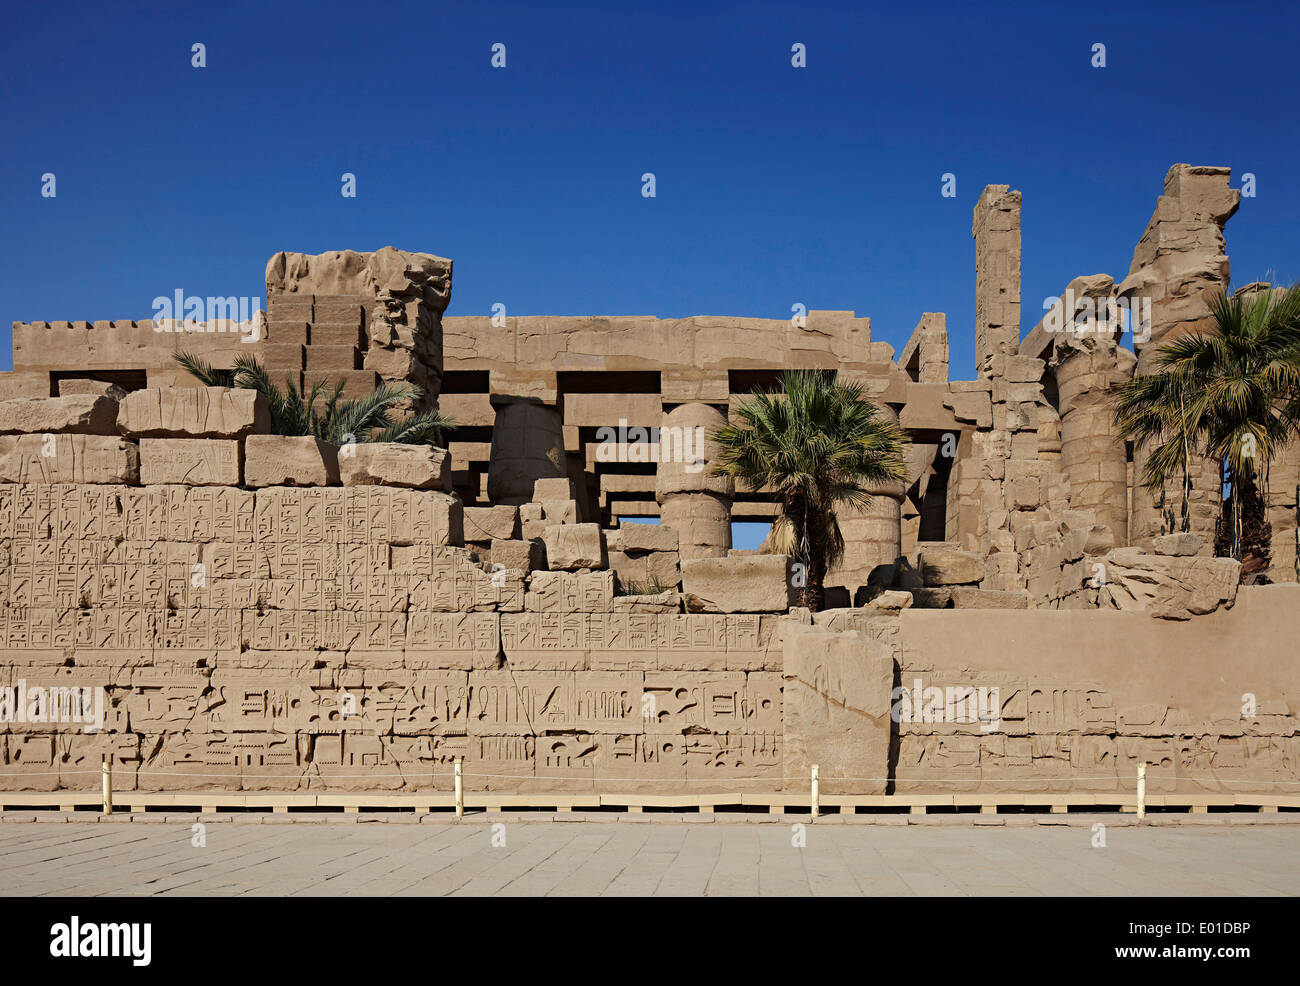 Karnak Temple. Largest religious building in the world. Open air museum - Stock Image